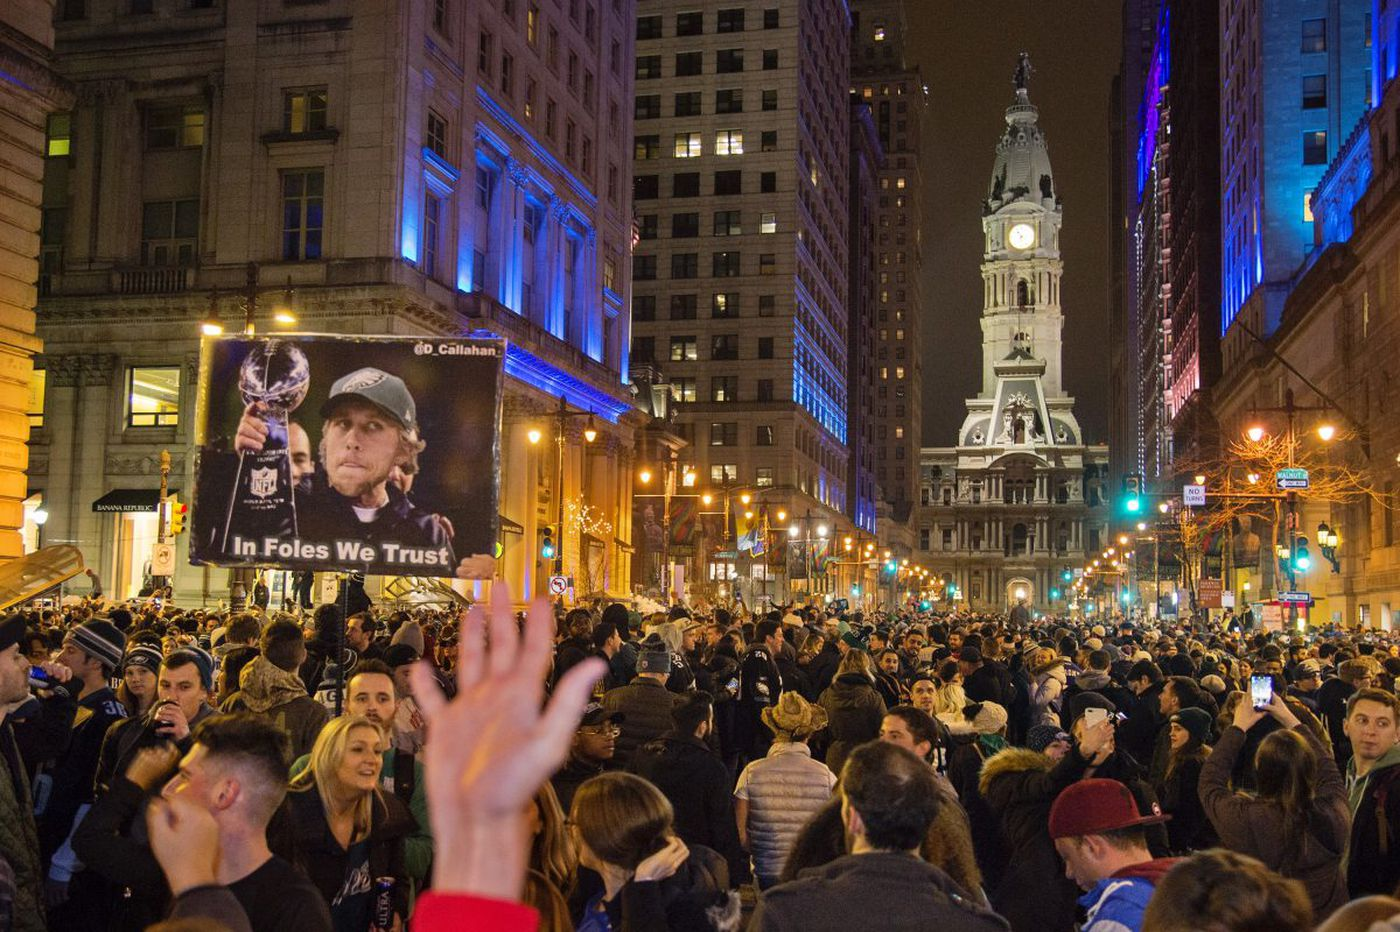 With Eagles win, Philadelphia and a region erupts